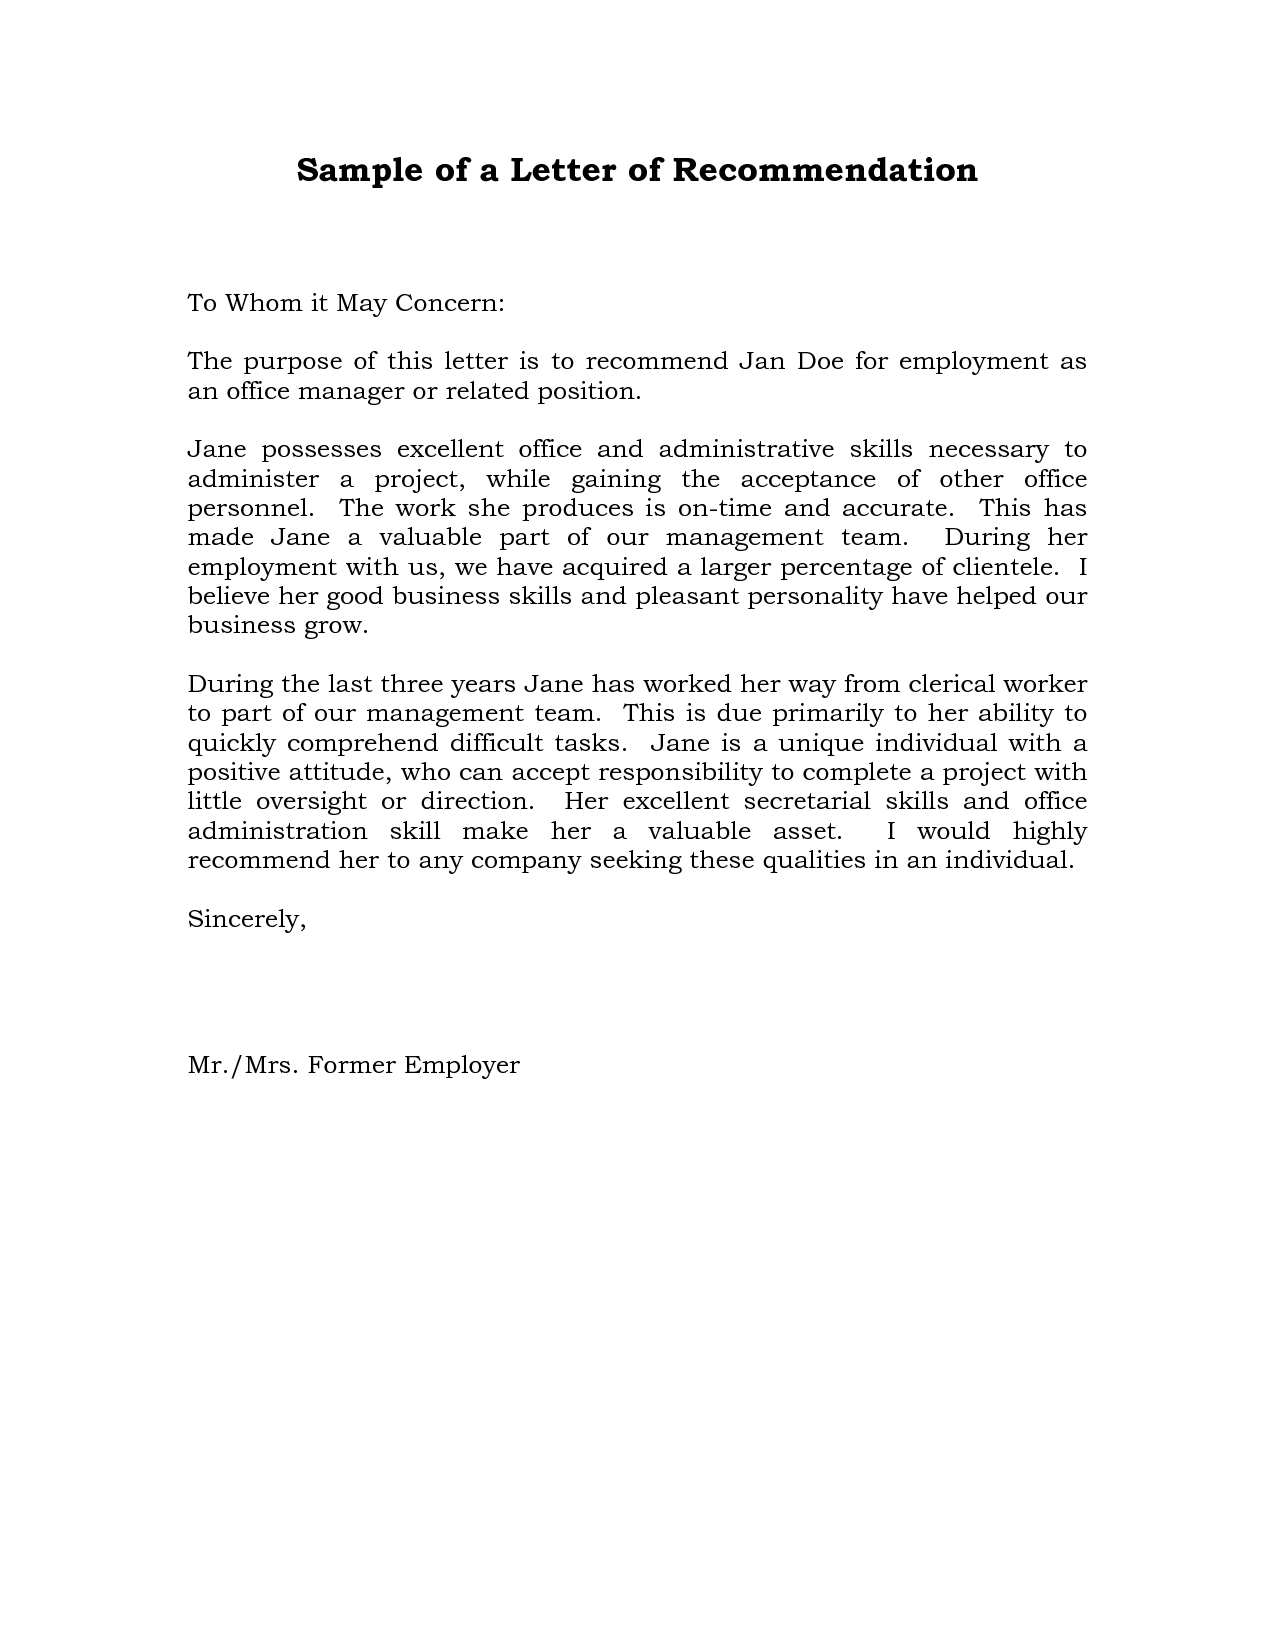 Reference Letter of Recommendation Sample – Template for a Reference for an Employee